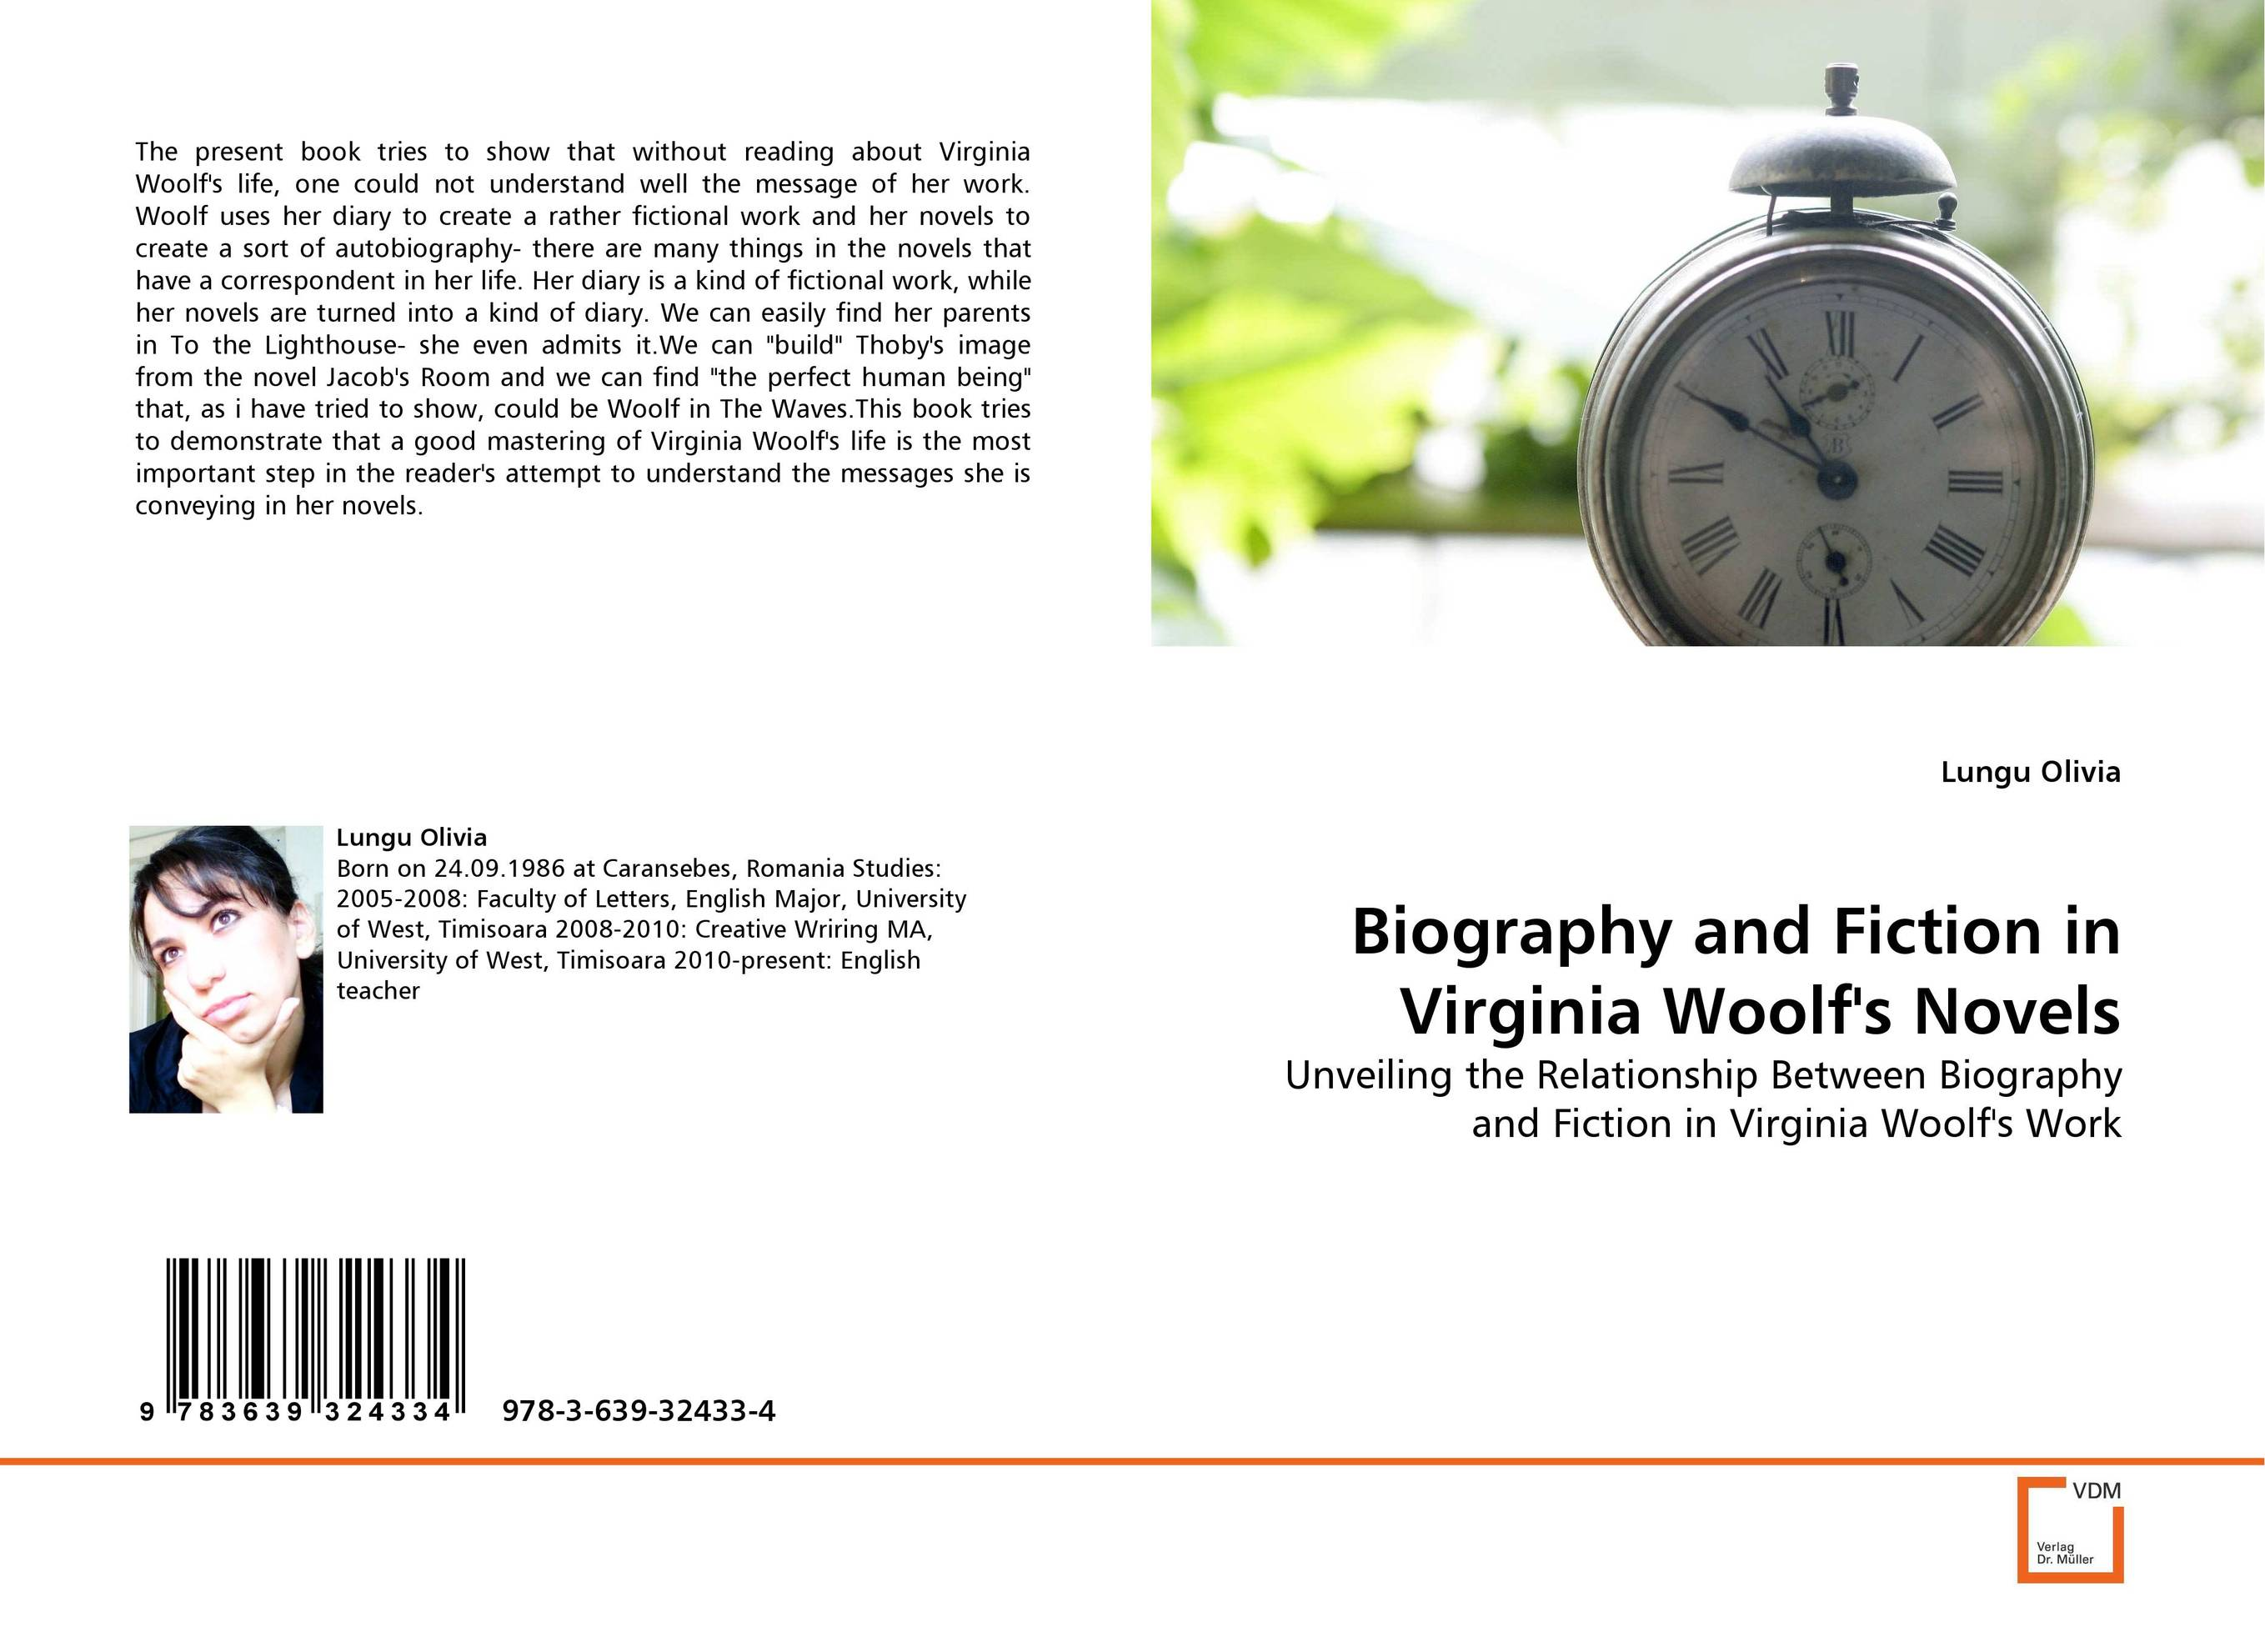 Biography and Fiction in Virginia Woolf''s Novels emerging image of women in virginia woolf's novels